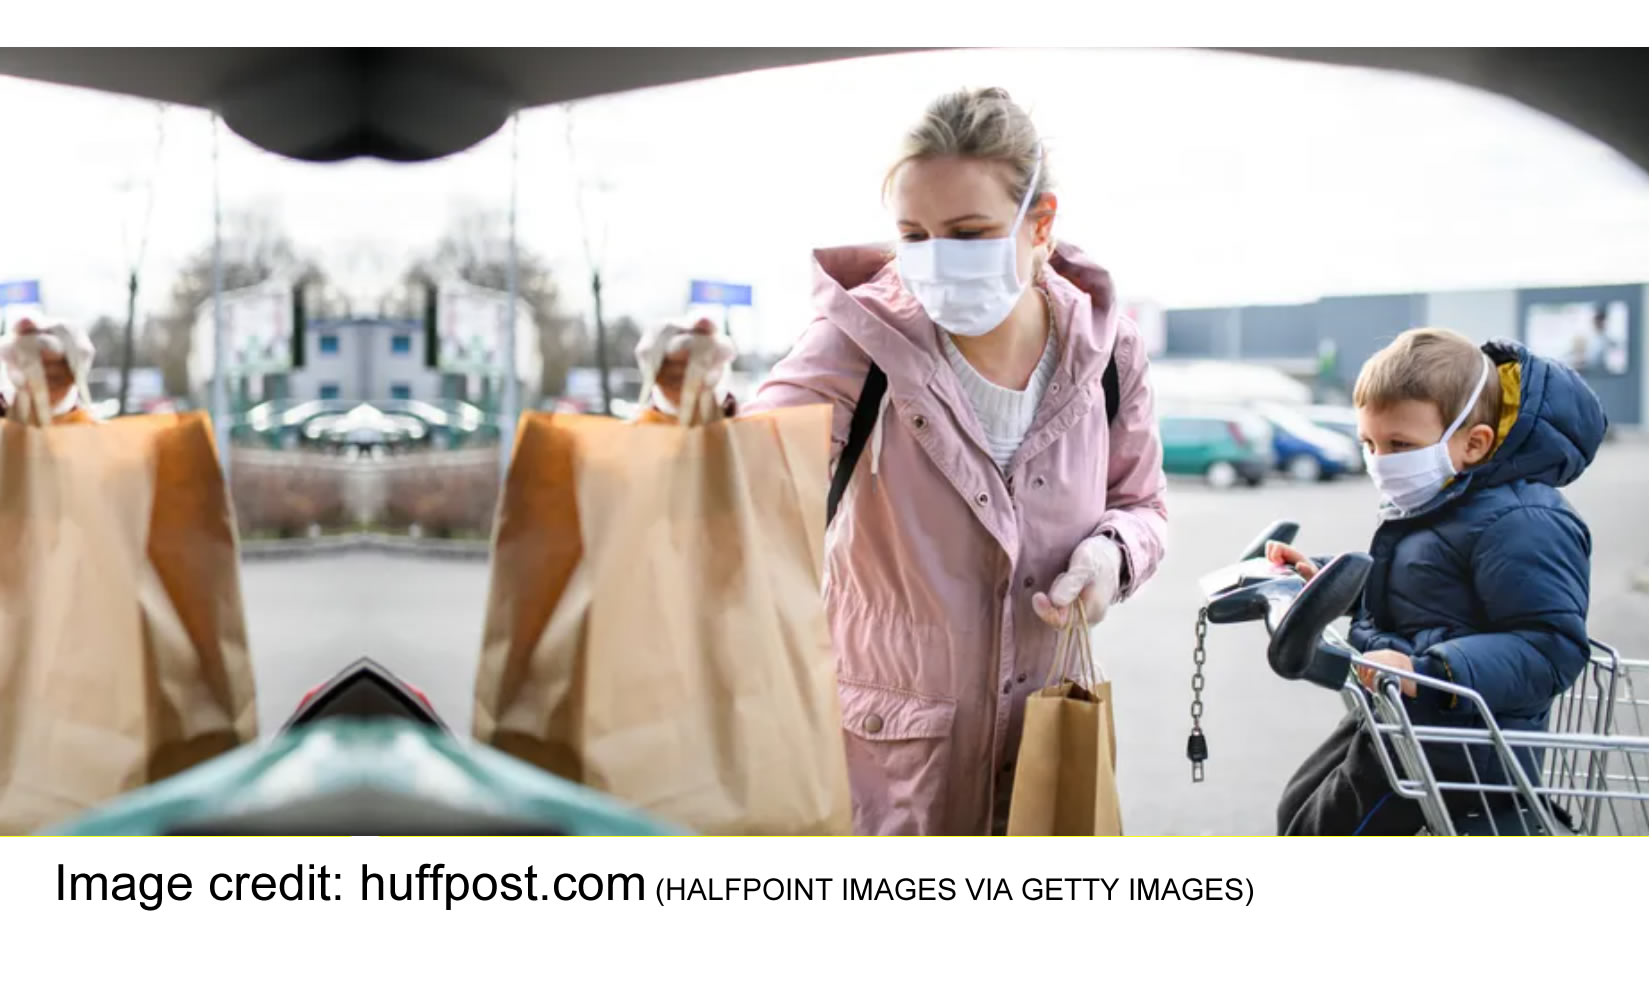 Do We Still Have to Wear Face Masks After Getting The COVID-19 Vaccine?